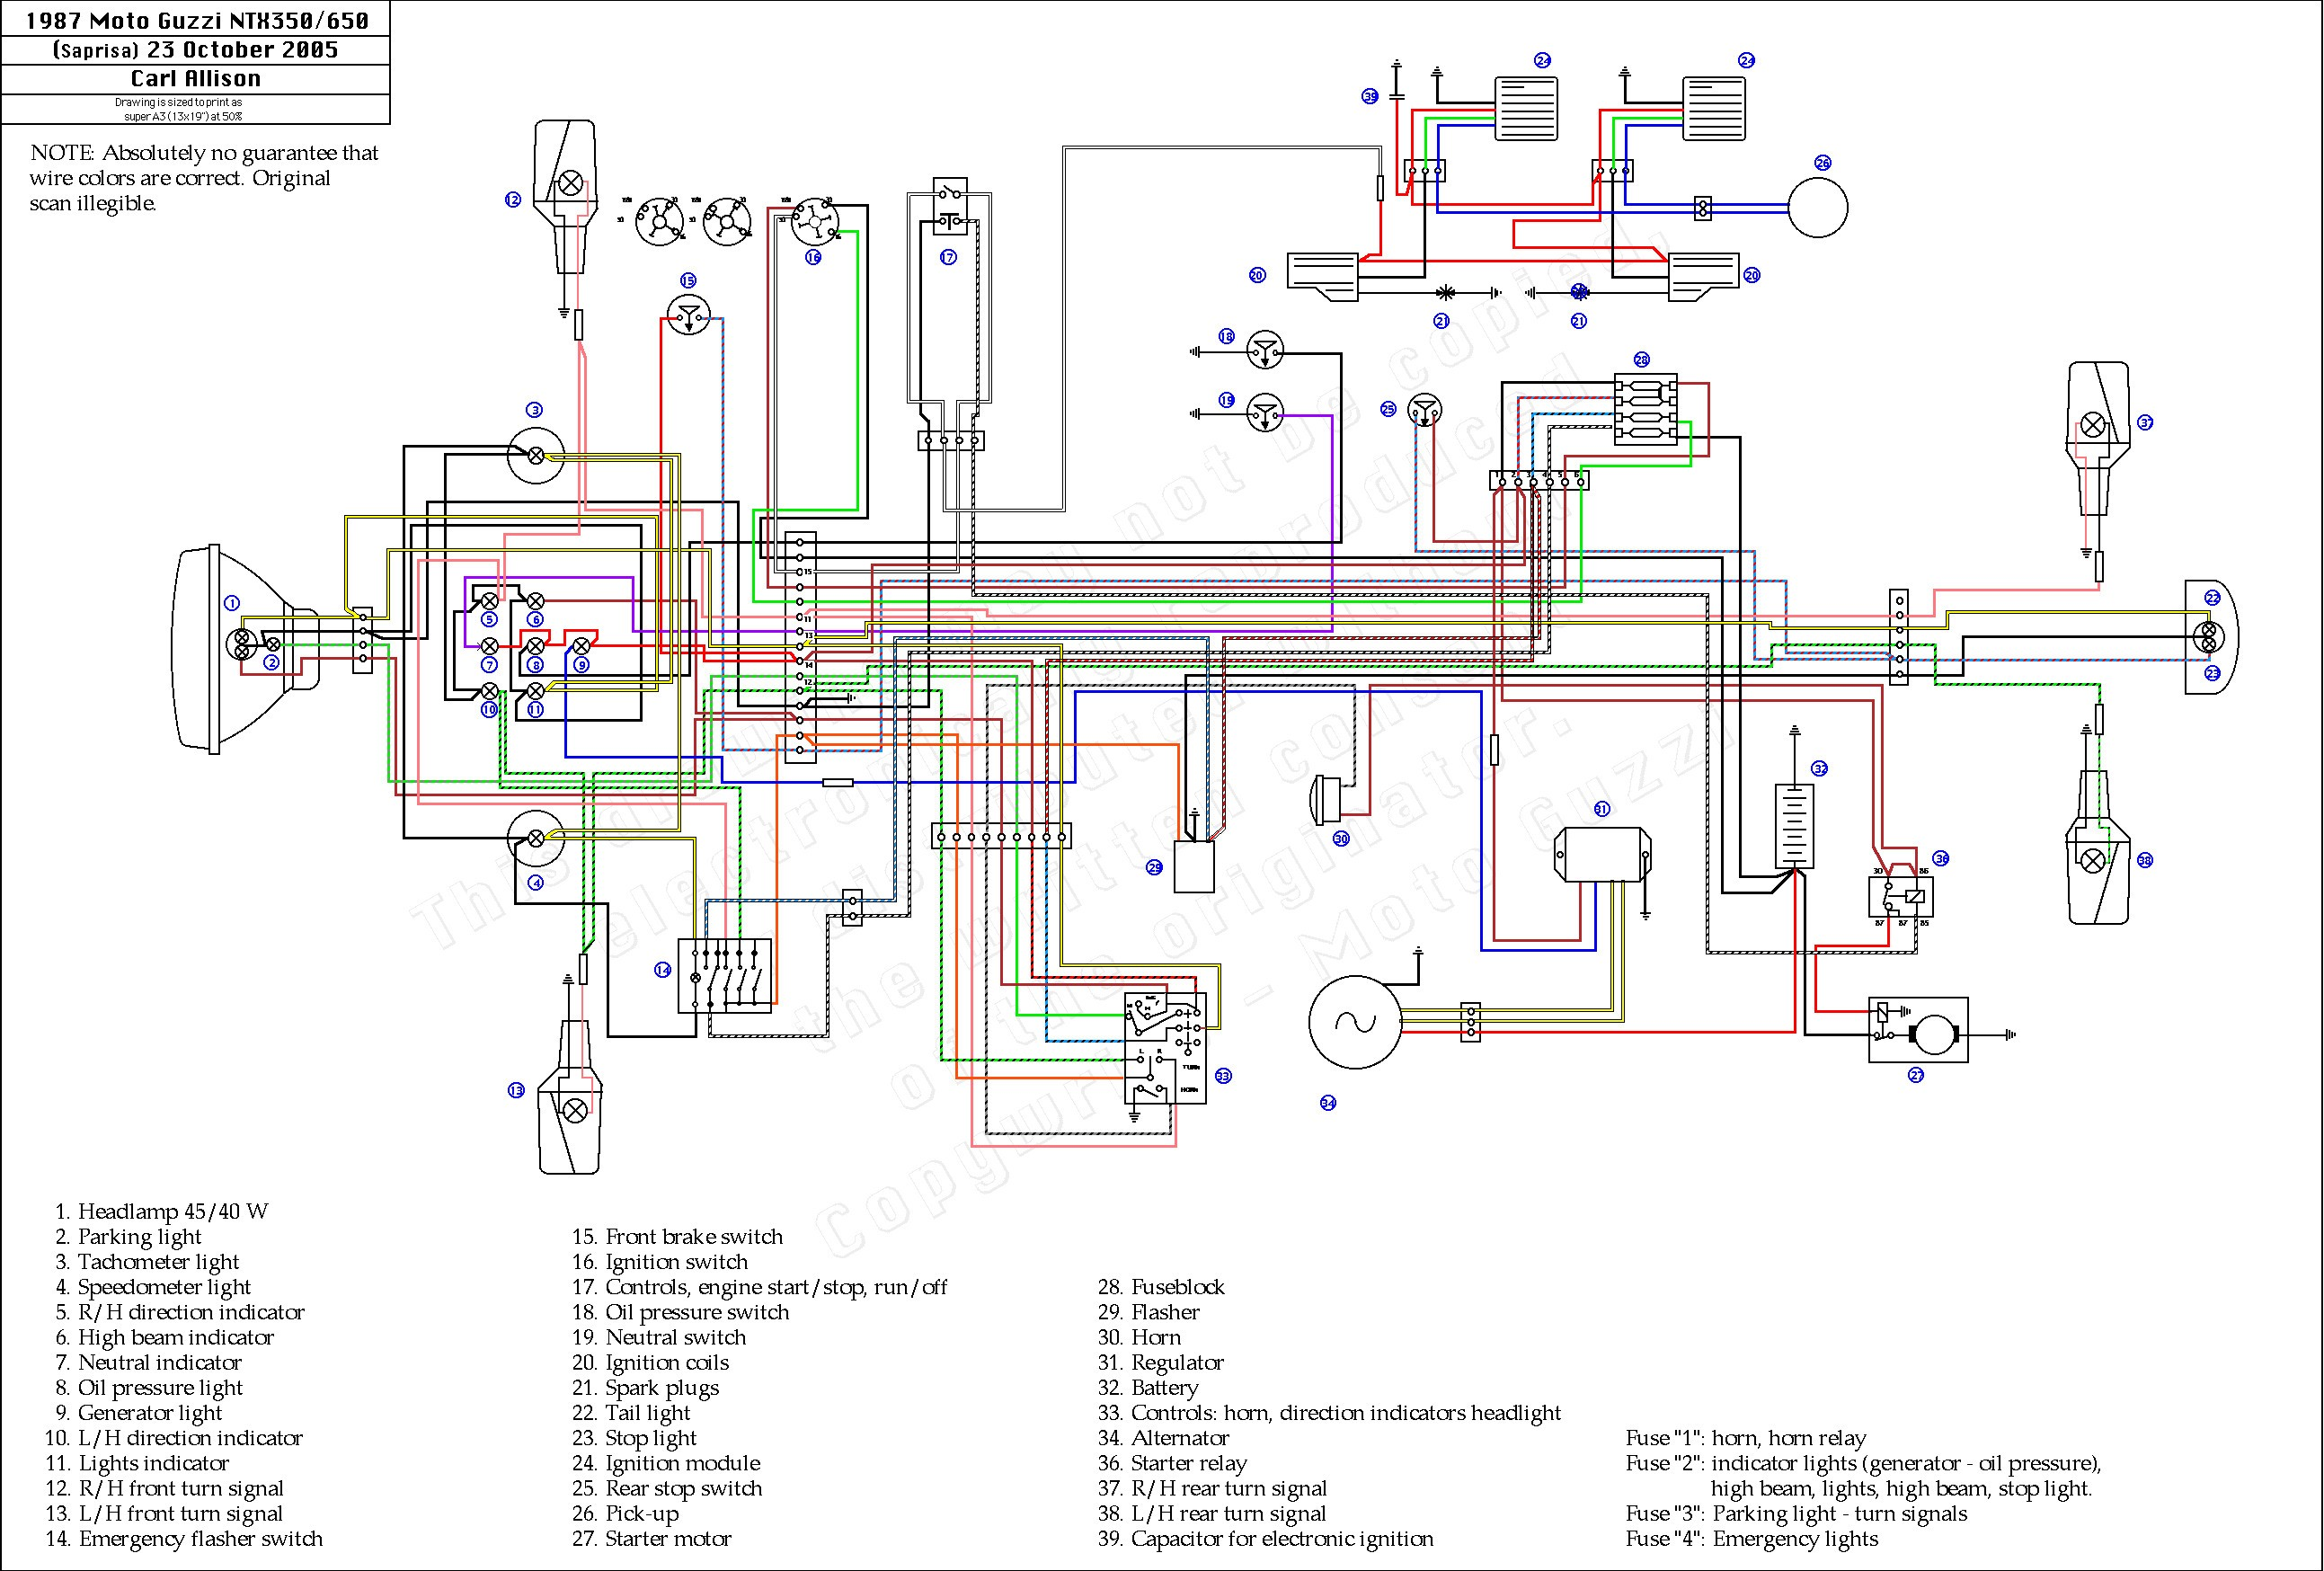 DIAGRAM] Ez Go Workhorse Wiring Diagram HD Version - BEAUTYFITNESS.KINGGO.FR | Workhorse Generator Wiring Diagram |  | beautyfitness kinggo fr